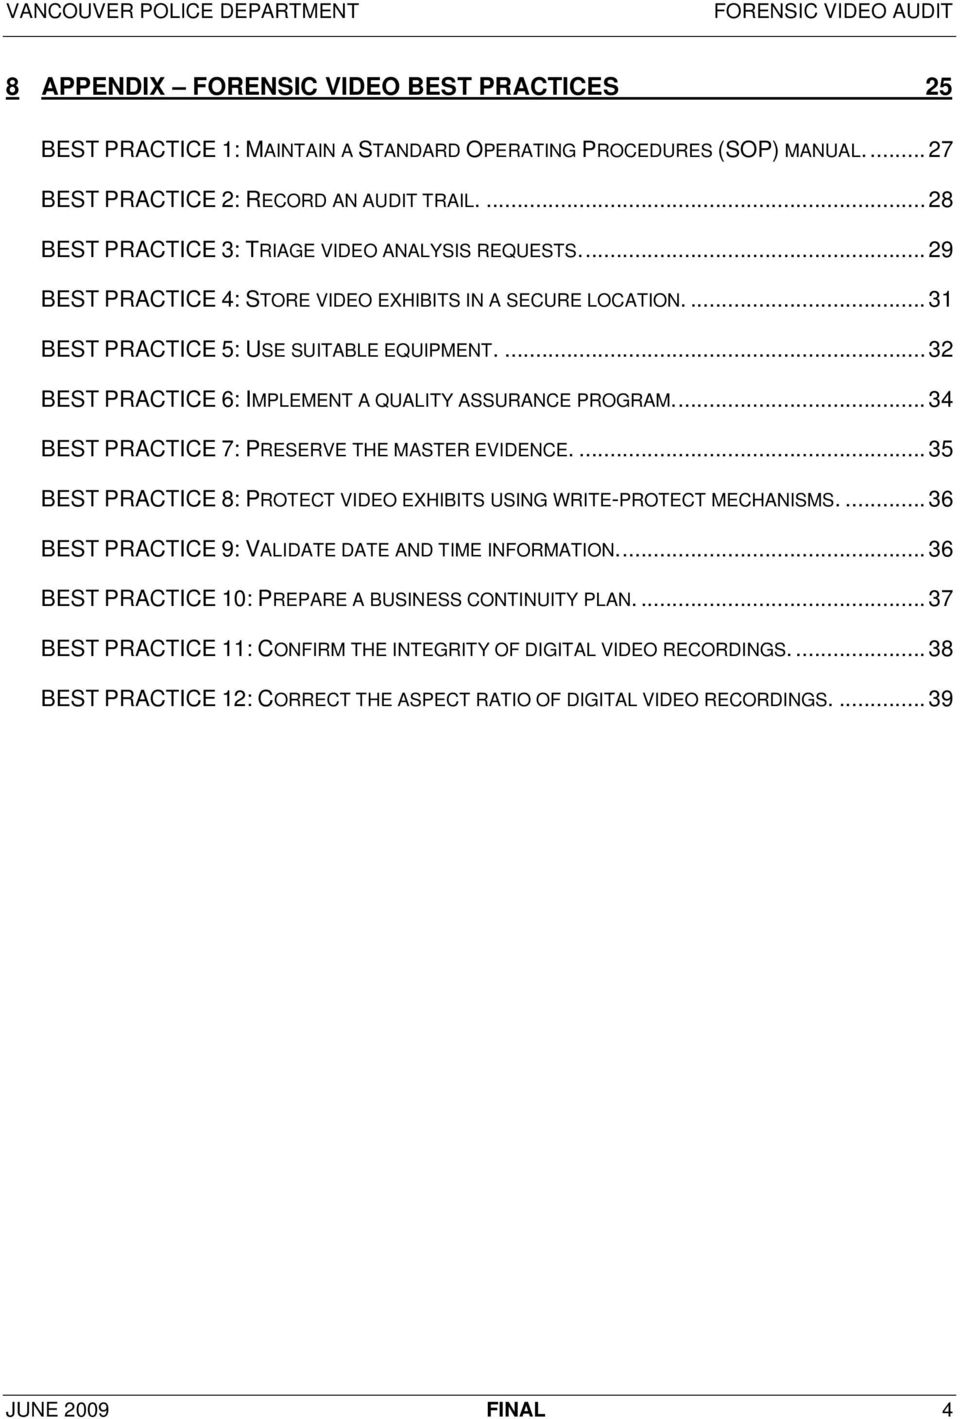 ... 32 BEST PRACTICE 6: IMPLEMENT A QUALITY ASSURANCE PROGRAM... 34 BEST PRACTICE 7: PRESERVE THE MASTER EVIDENCE.... 35 BEST PRACTICE 8: PROTECT VIDEO EXHIBITS USING WRITE-PROTECT MECHANISMS.